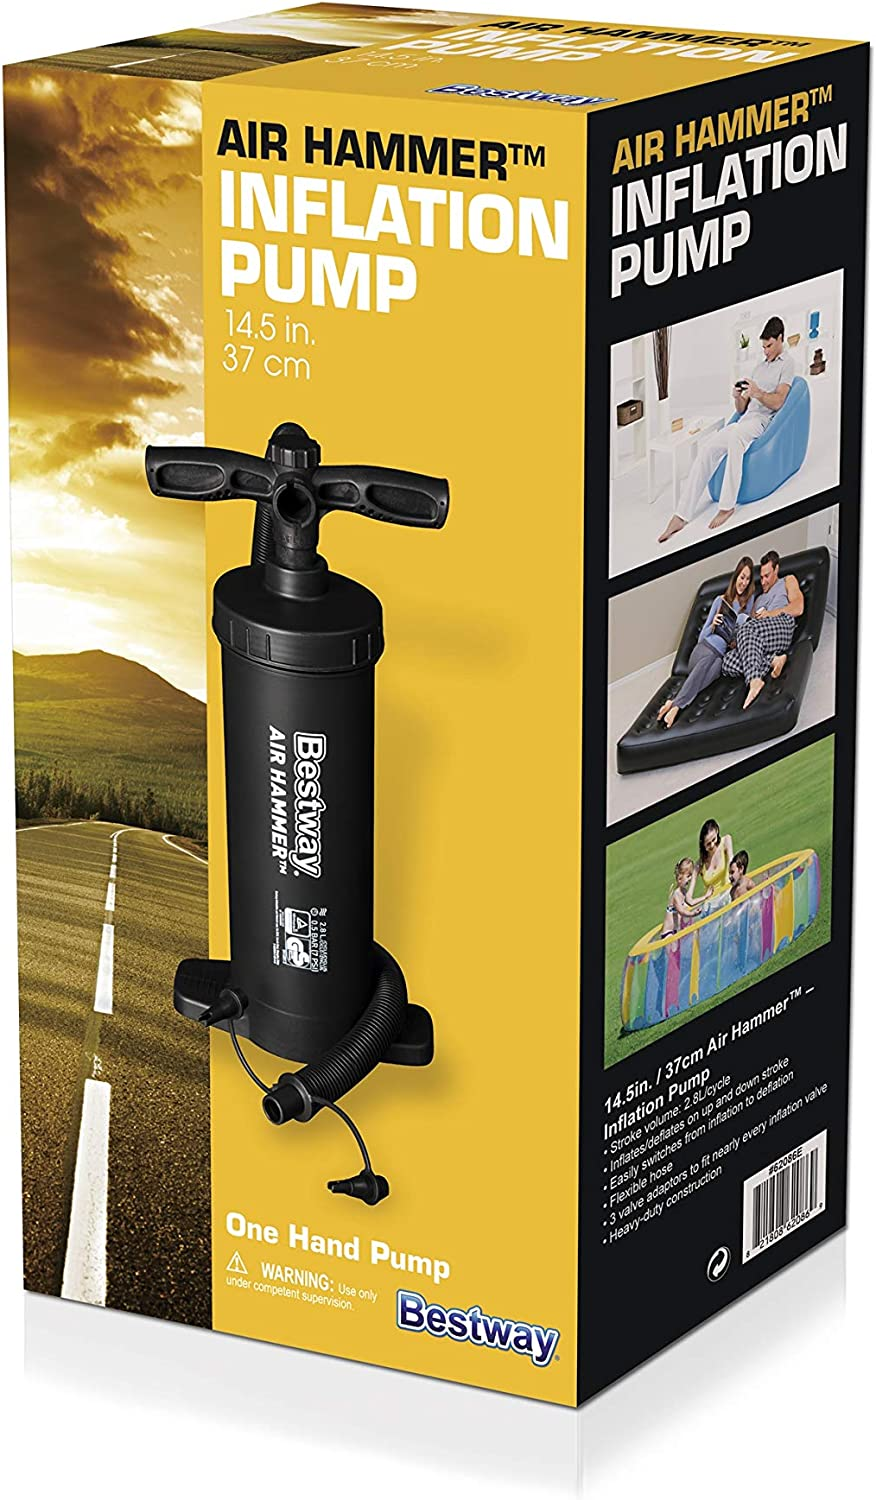 BESTWAY 12 INCH HAMMER INFLATION HAND AIR PUMP FOR AIR BED CAMPING BEACH TOYS